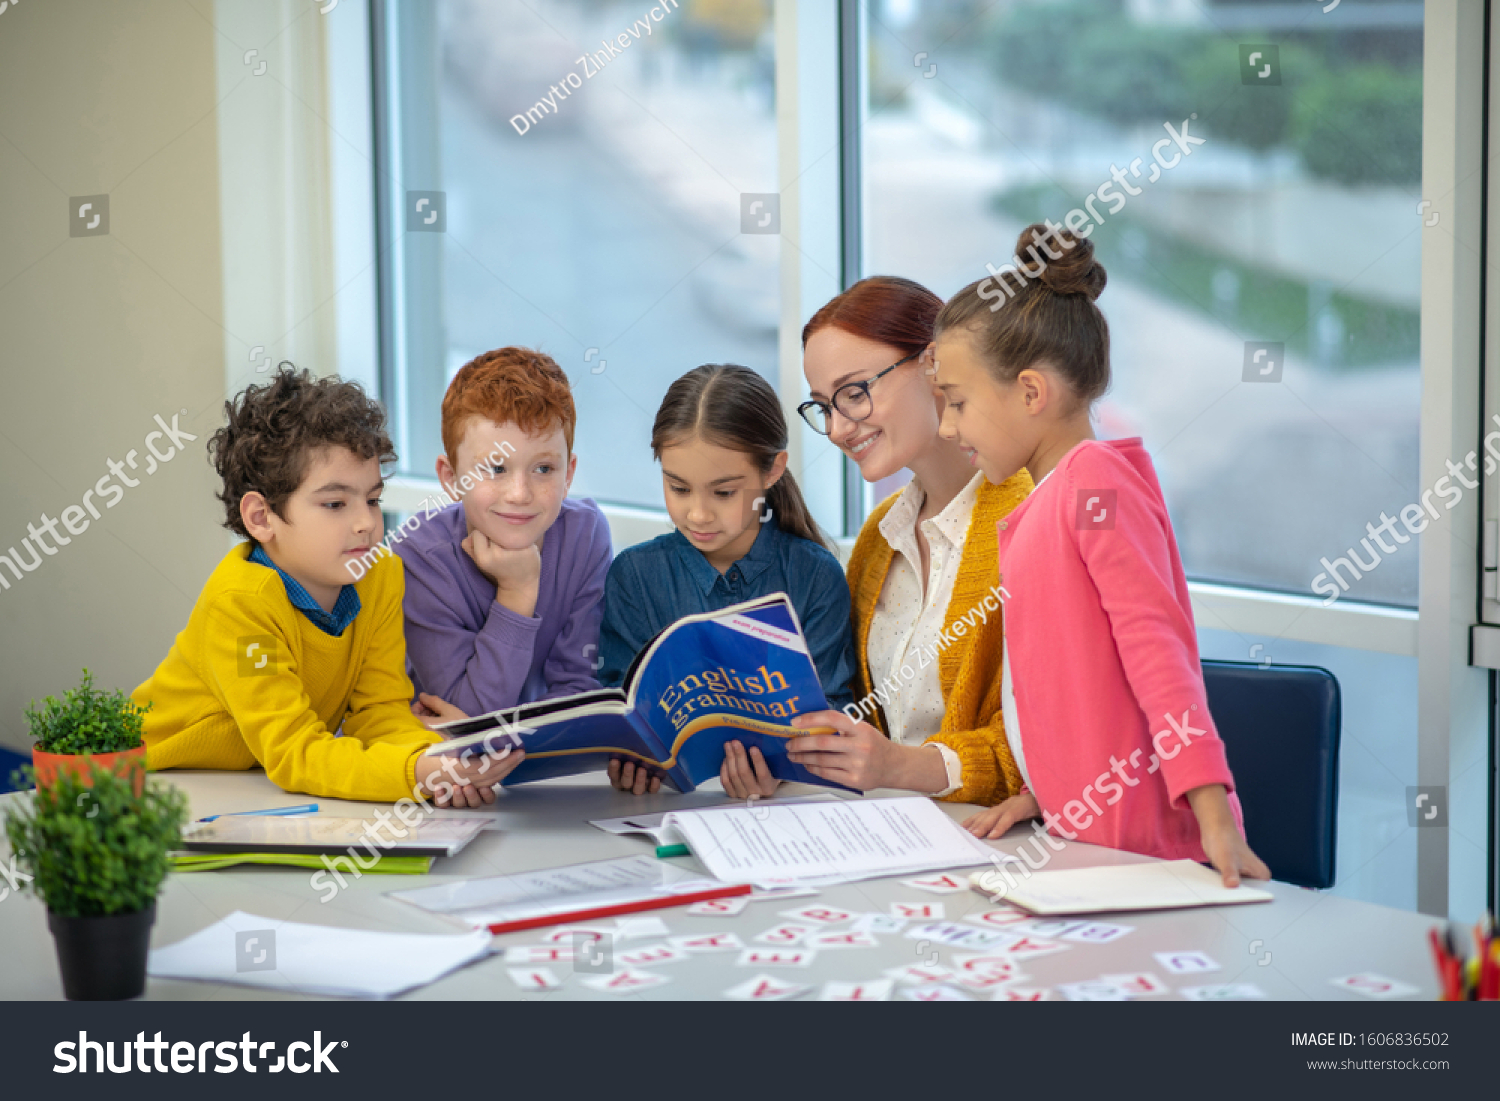 Learning English grammar. Children reading a book during their English class #1606836502